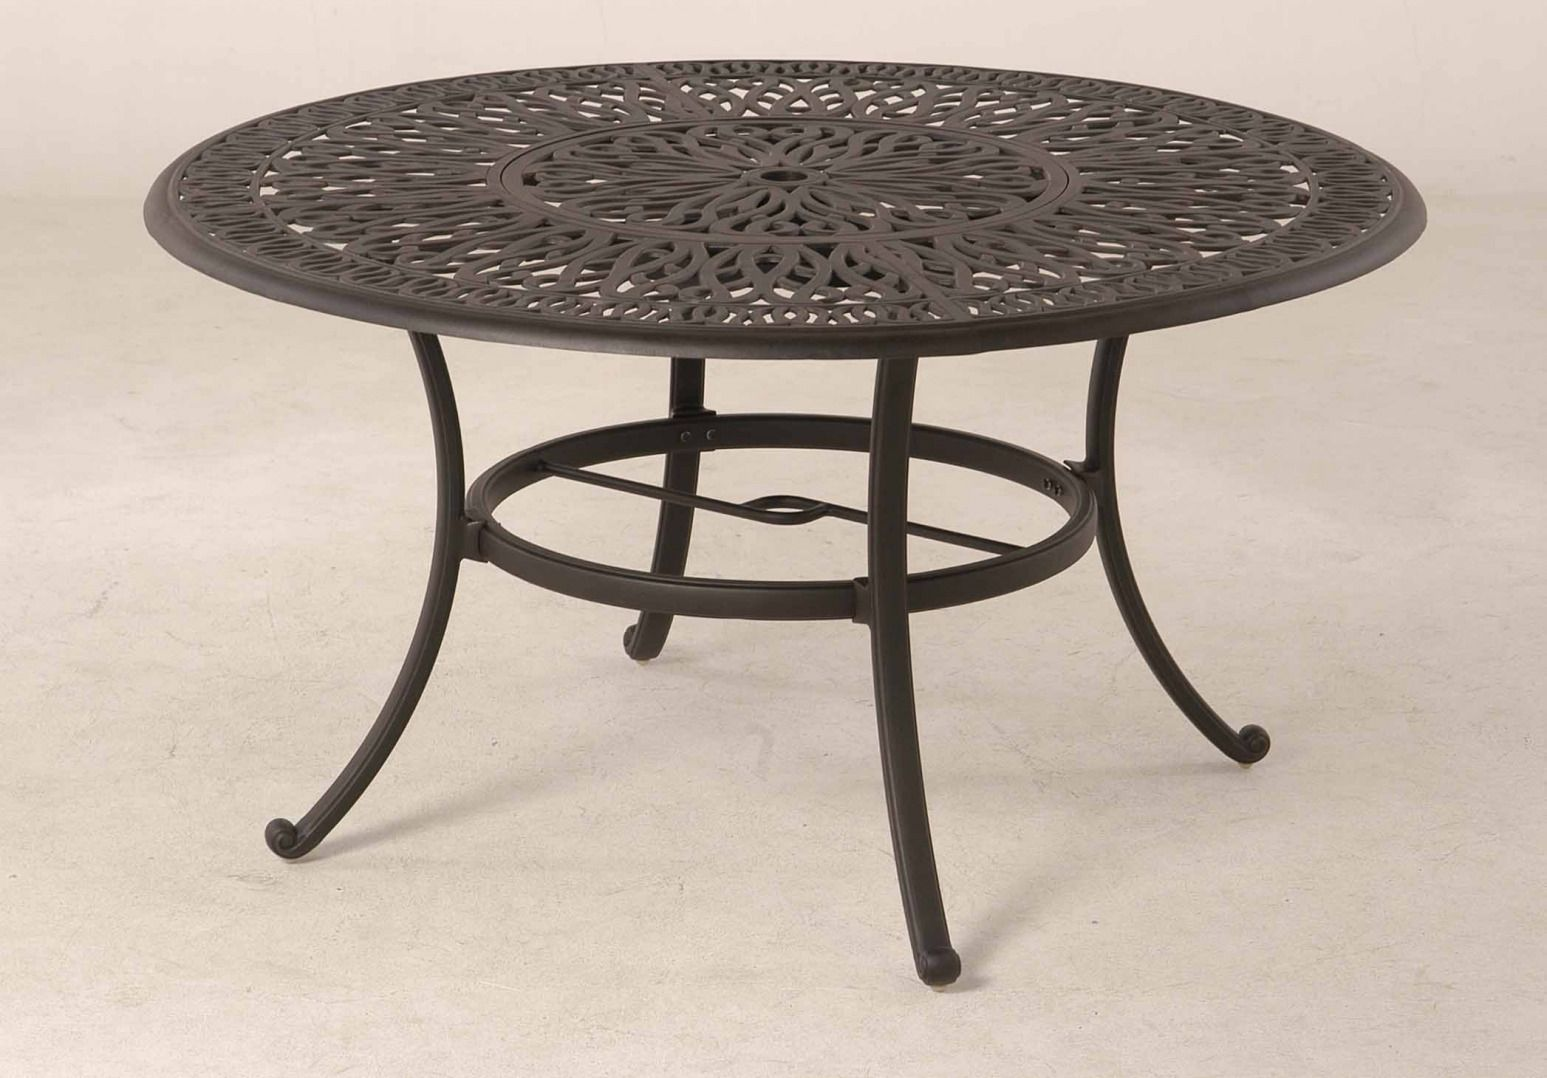 Inch Round Patio Table Americas Best Furniture Check More - 60 inch round aluminum patio table